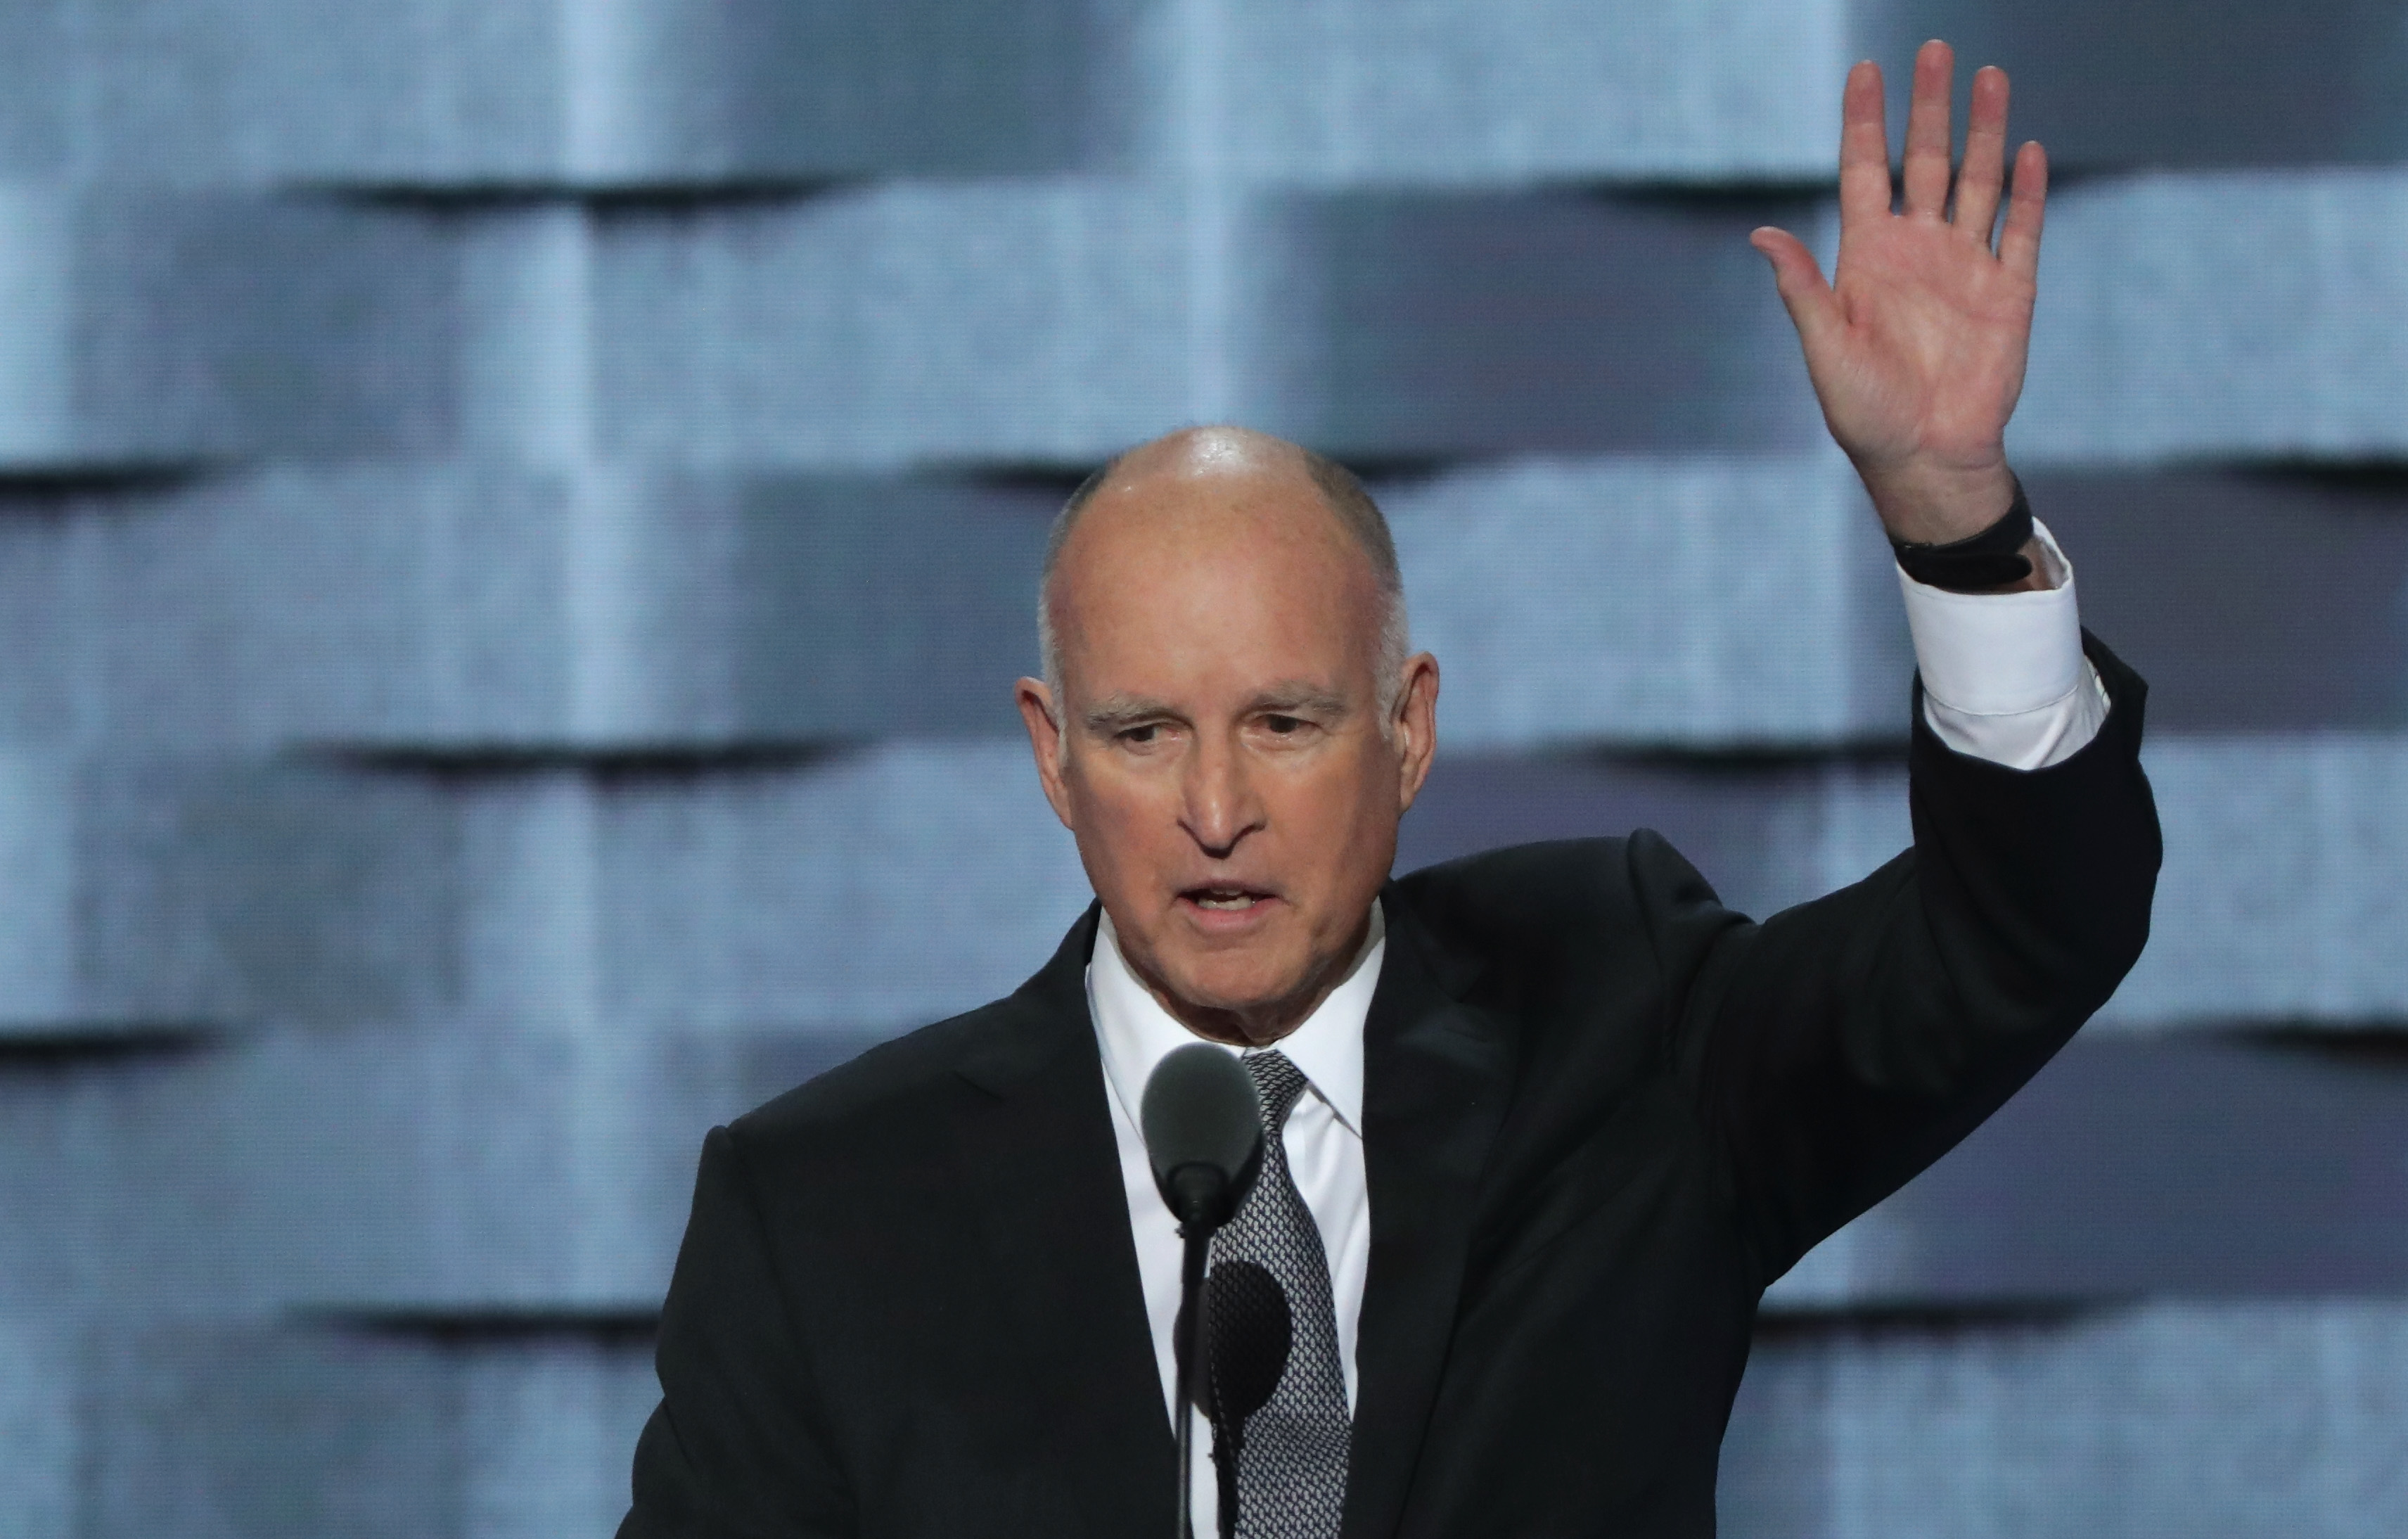 California Governor Jerry Brown delivers remarks on the third day of the Democratic National Convention at the Wells Fargo Center, July 27, 2016 in Philadelphia, Pennsylvania.